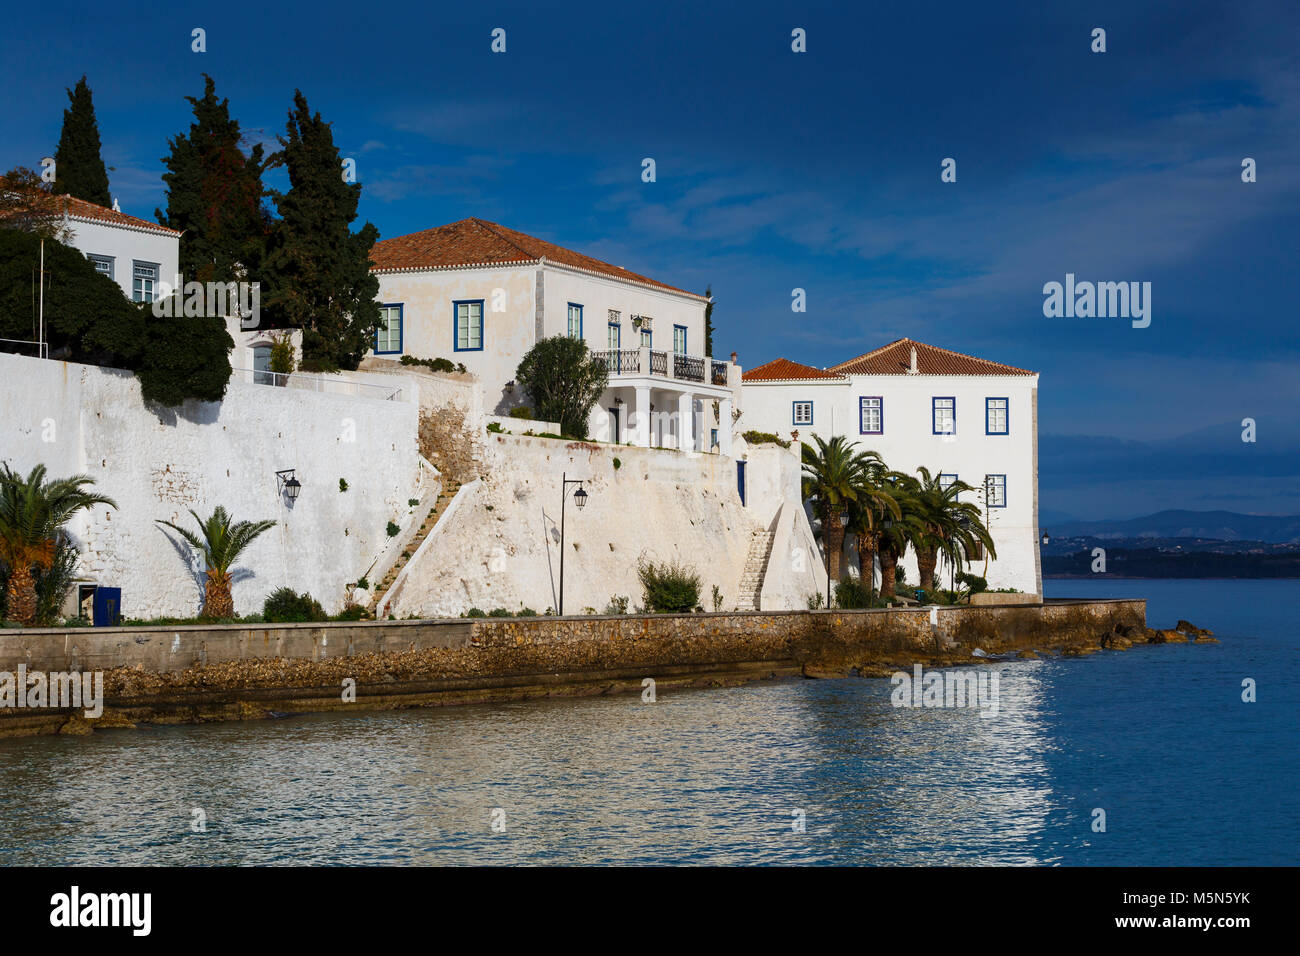 Traditional architecture in Spetses seafront, Greece. - Stock Image